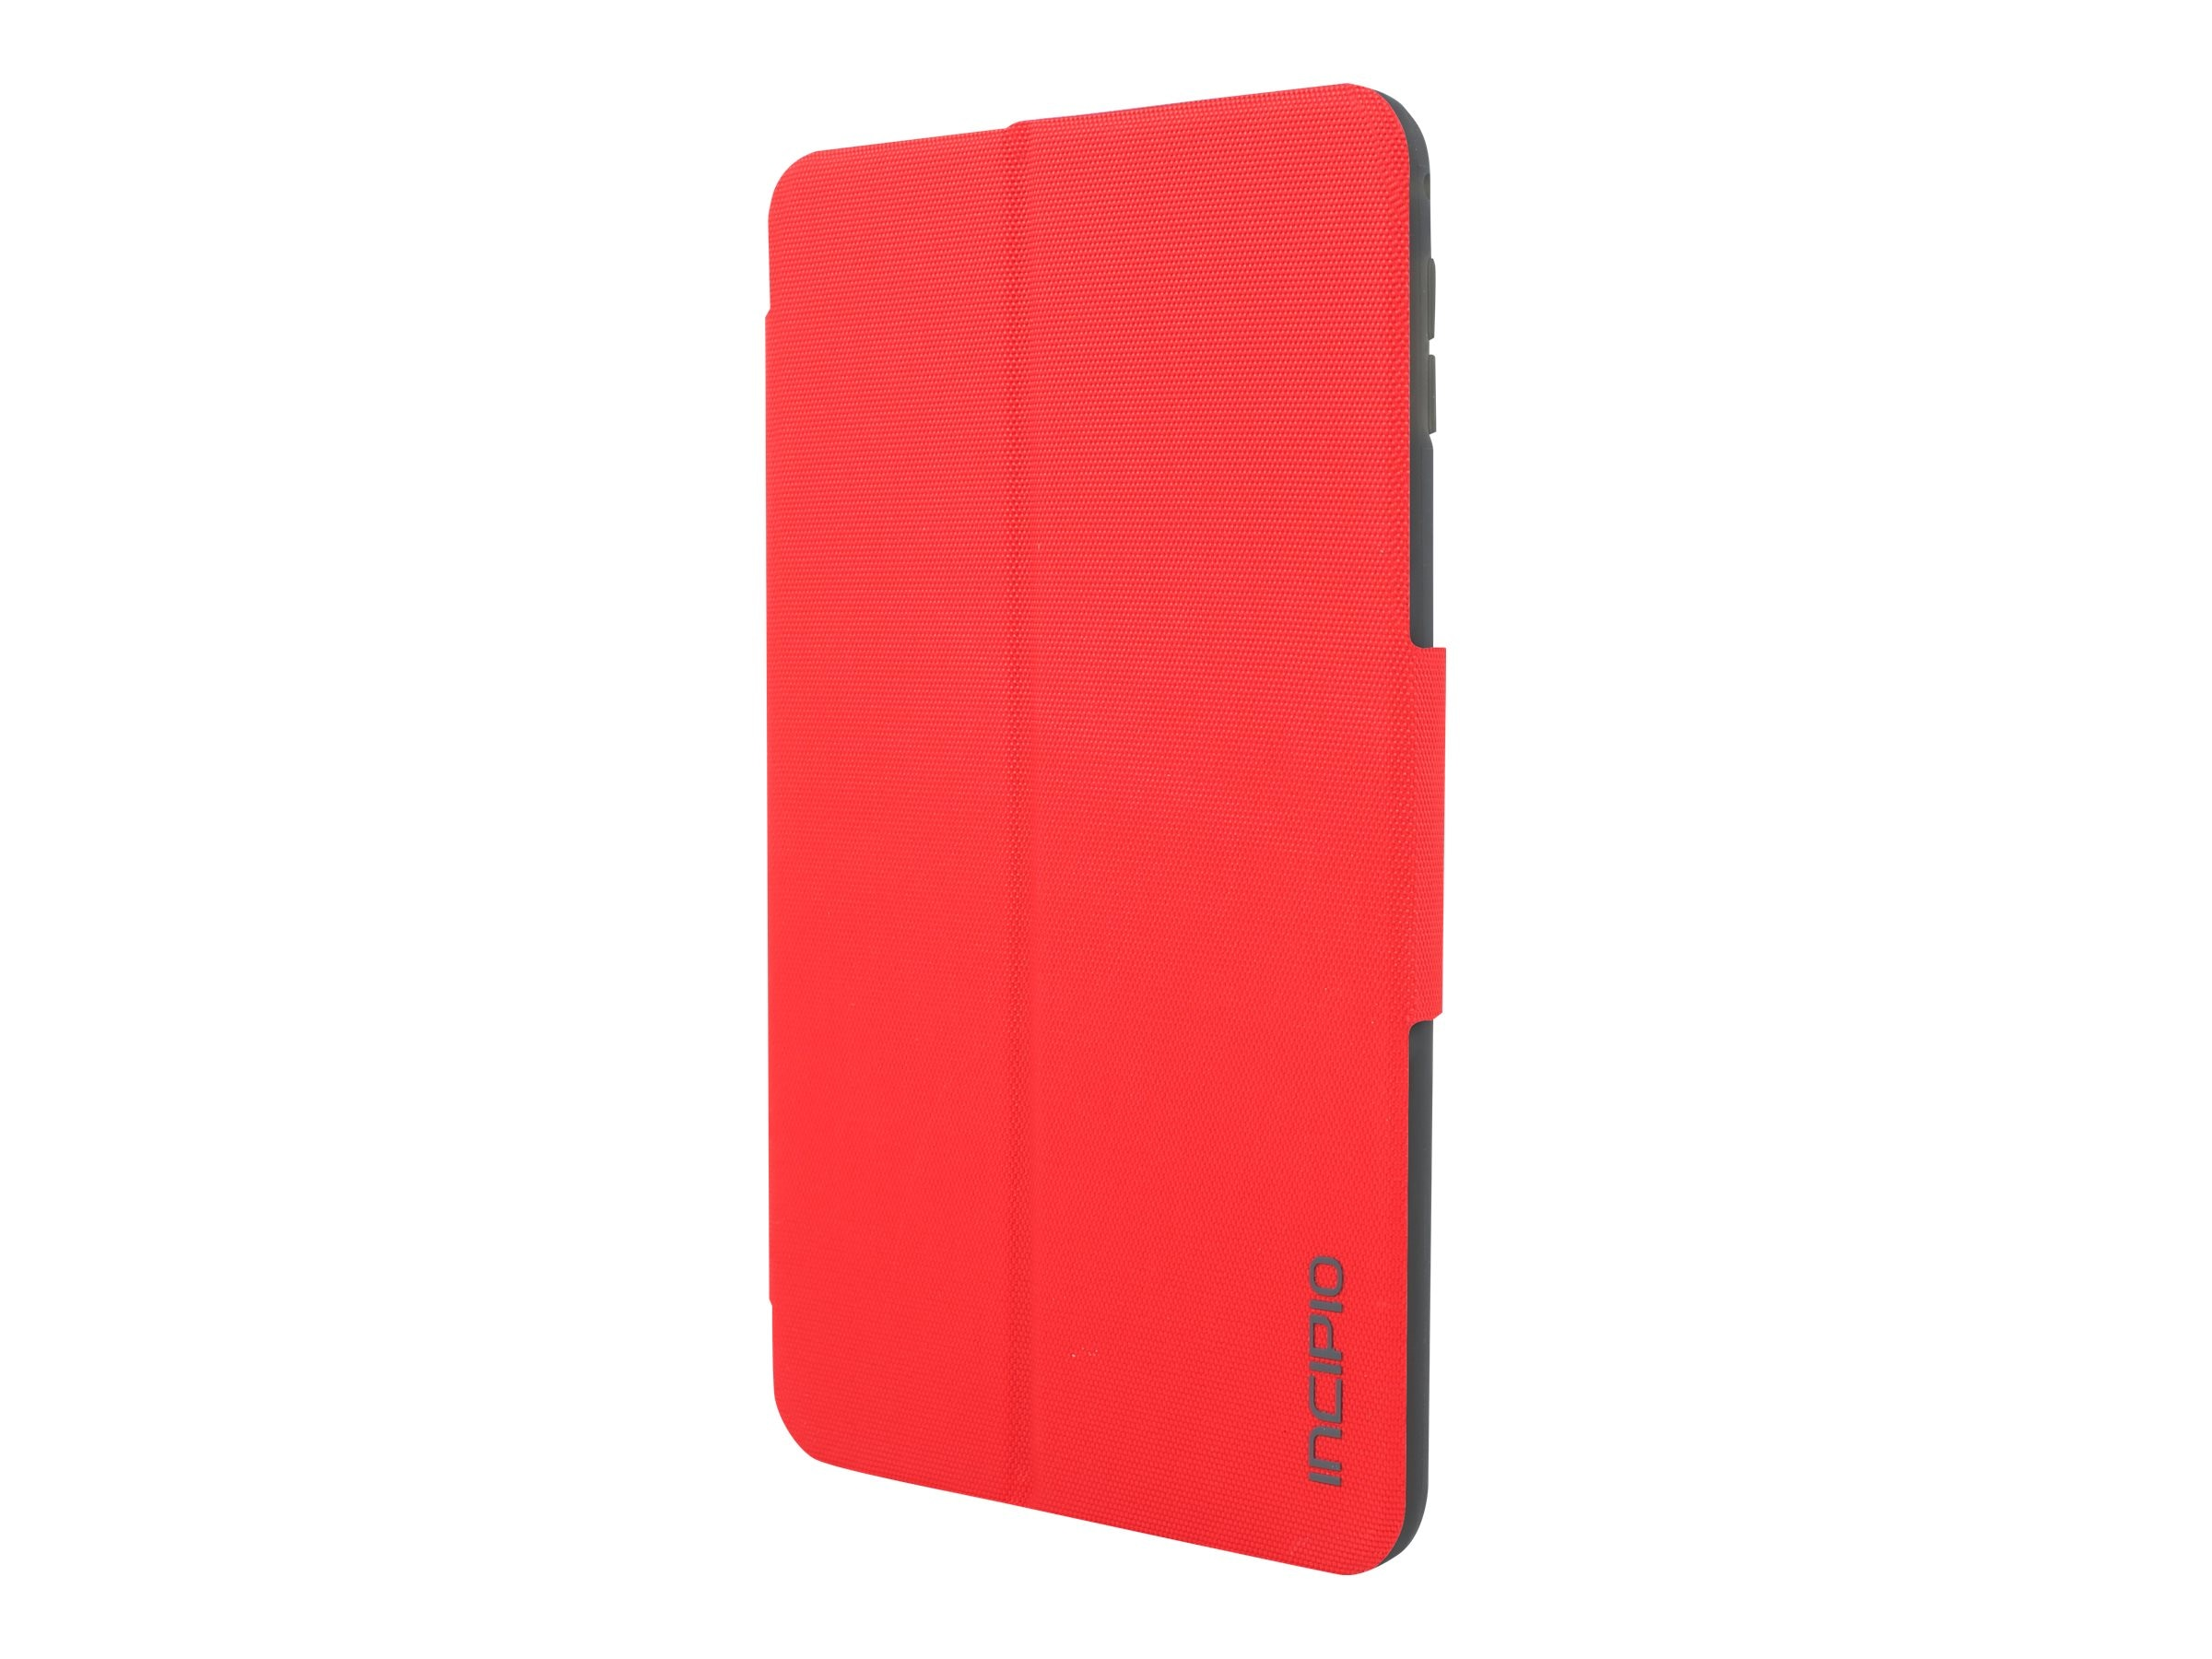 Incipio Technology IPD-281-RED Image 1